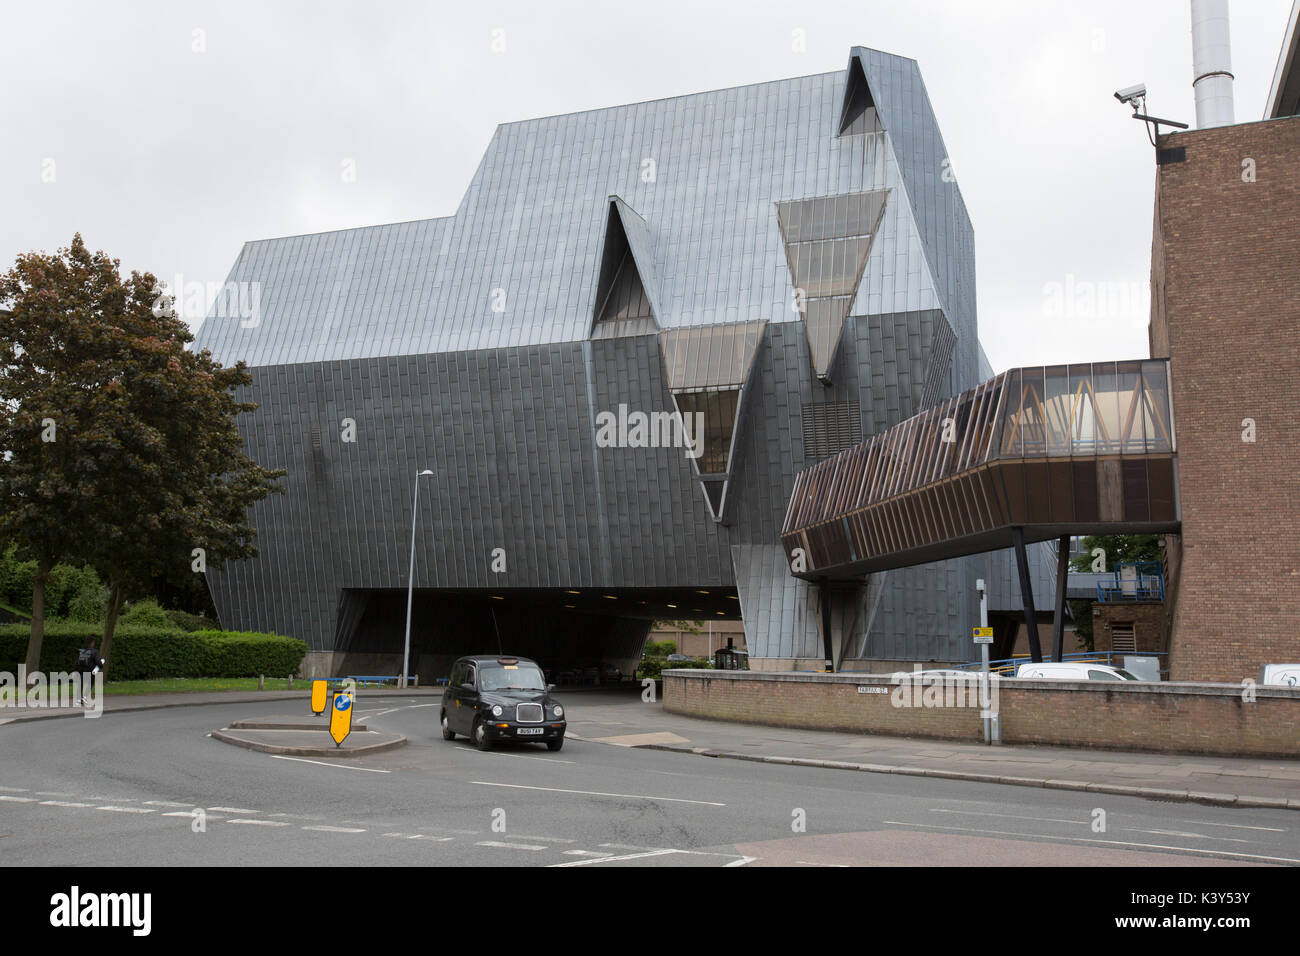 Coventry Sports and Leisure Centre, due for demolition in 2019. - Stock Image